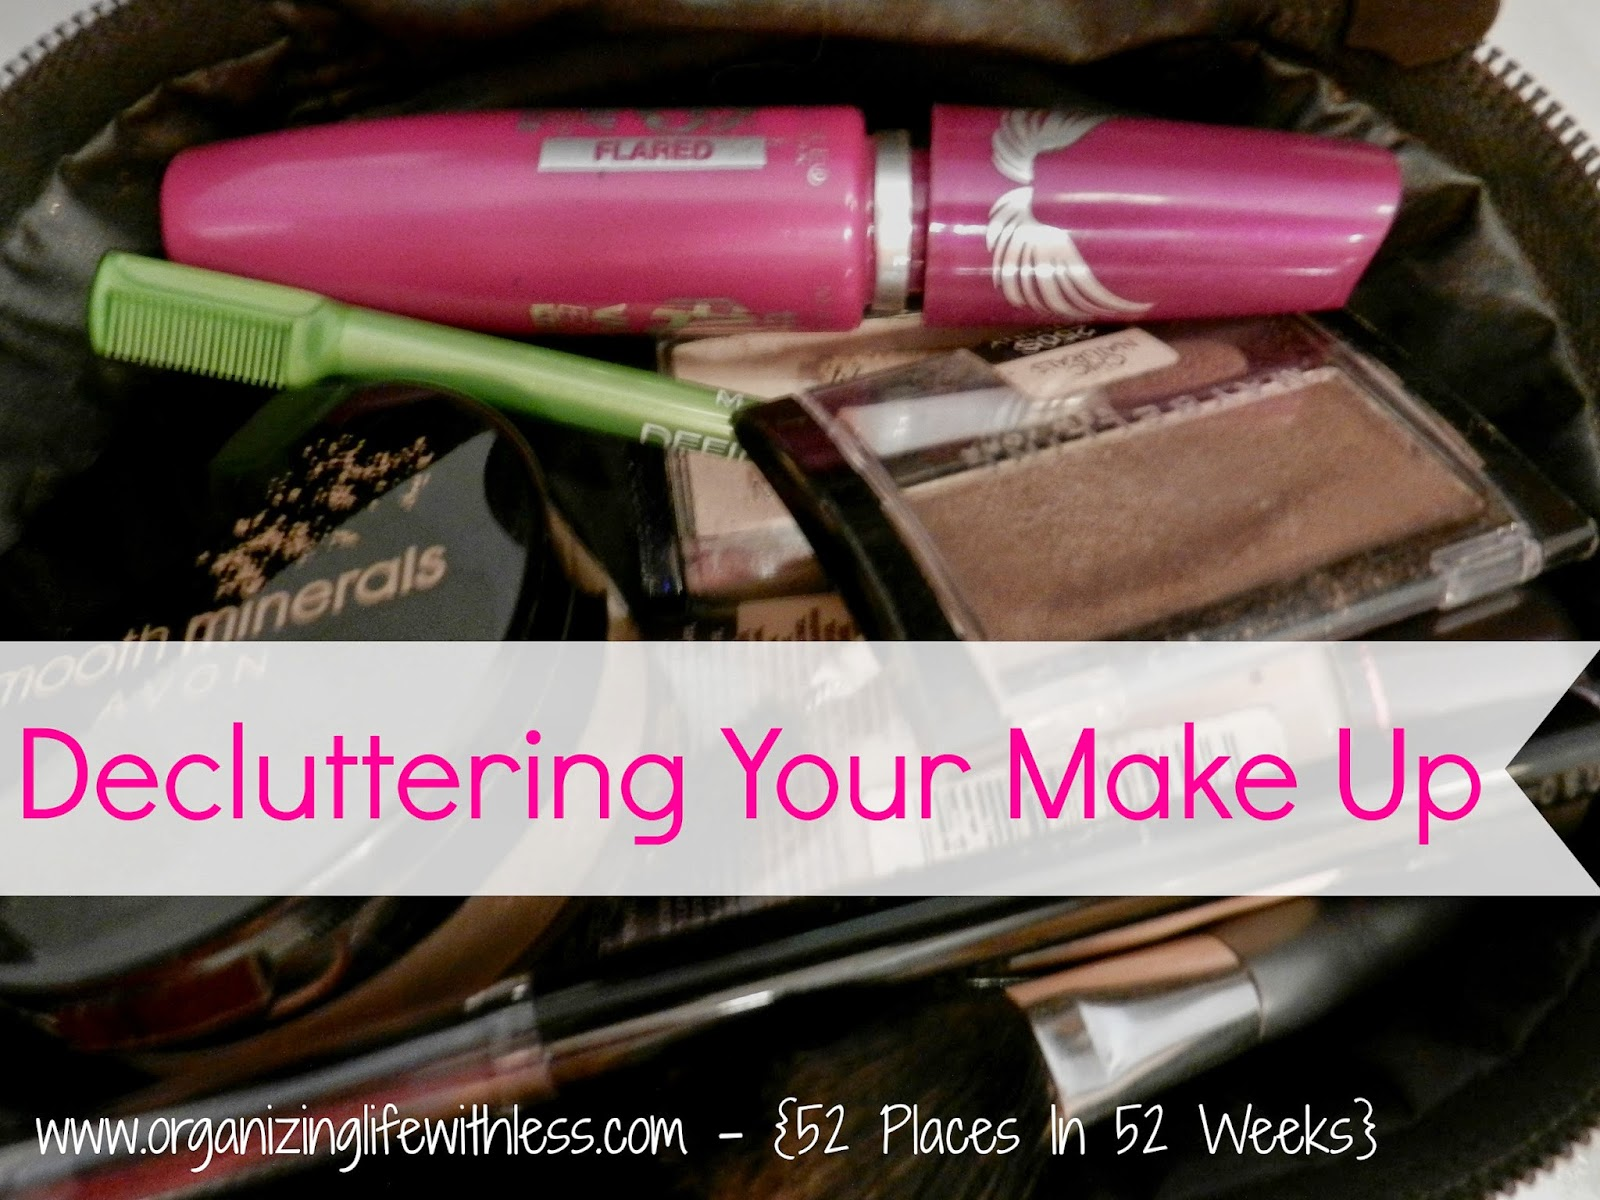 52 Places In 52 Weeks: Decluttering Your Make Up